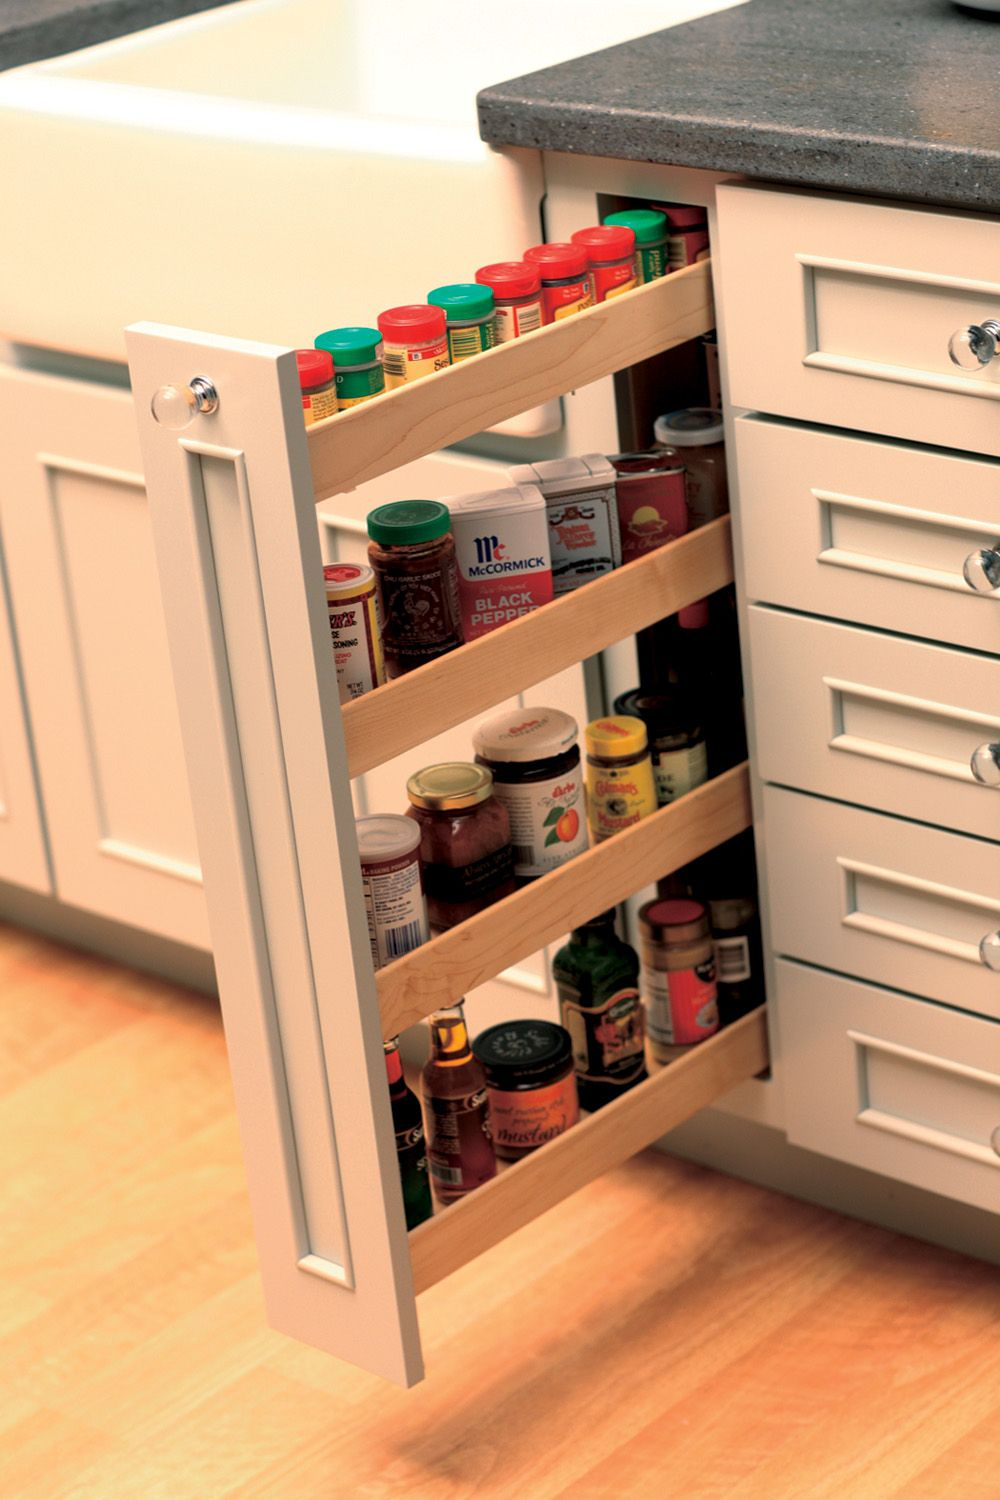 Small Es Offer Surprising Amount Of Storage With Vertical Pull Out E Rack Cabinet